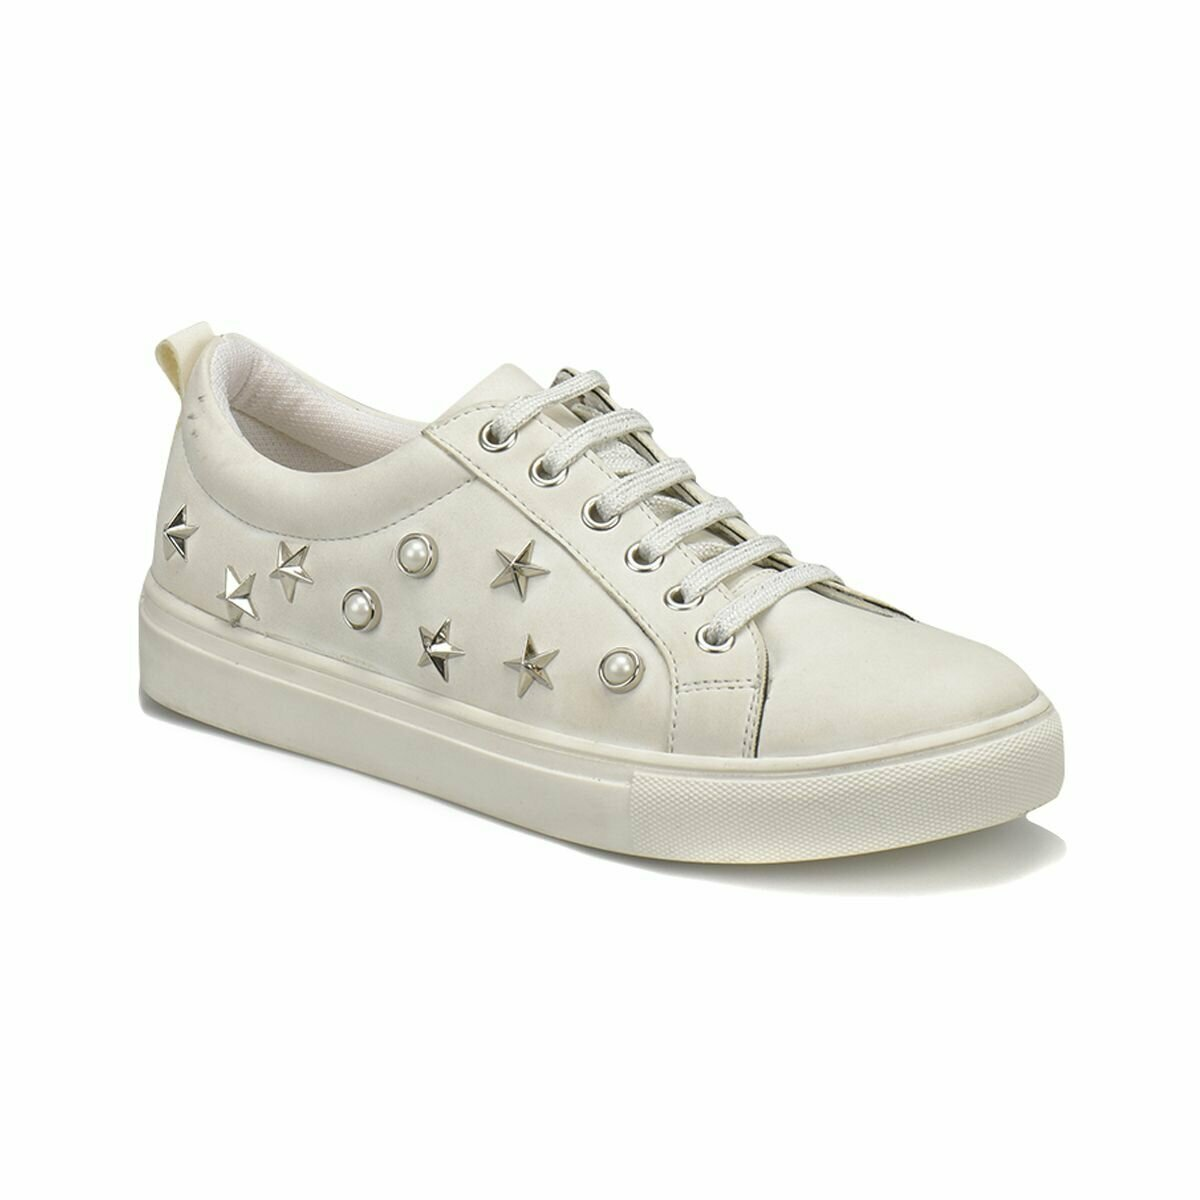 FLO 18S-BUTIGO-003 White Women 'S Shoes BUTIGO